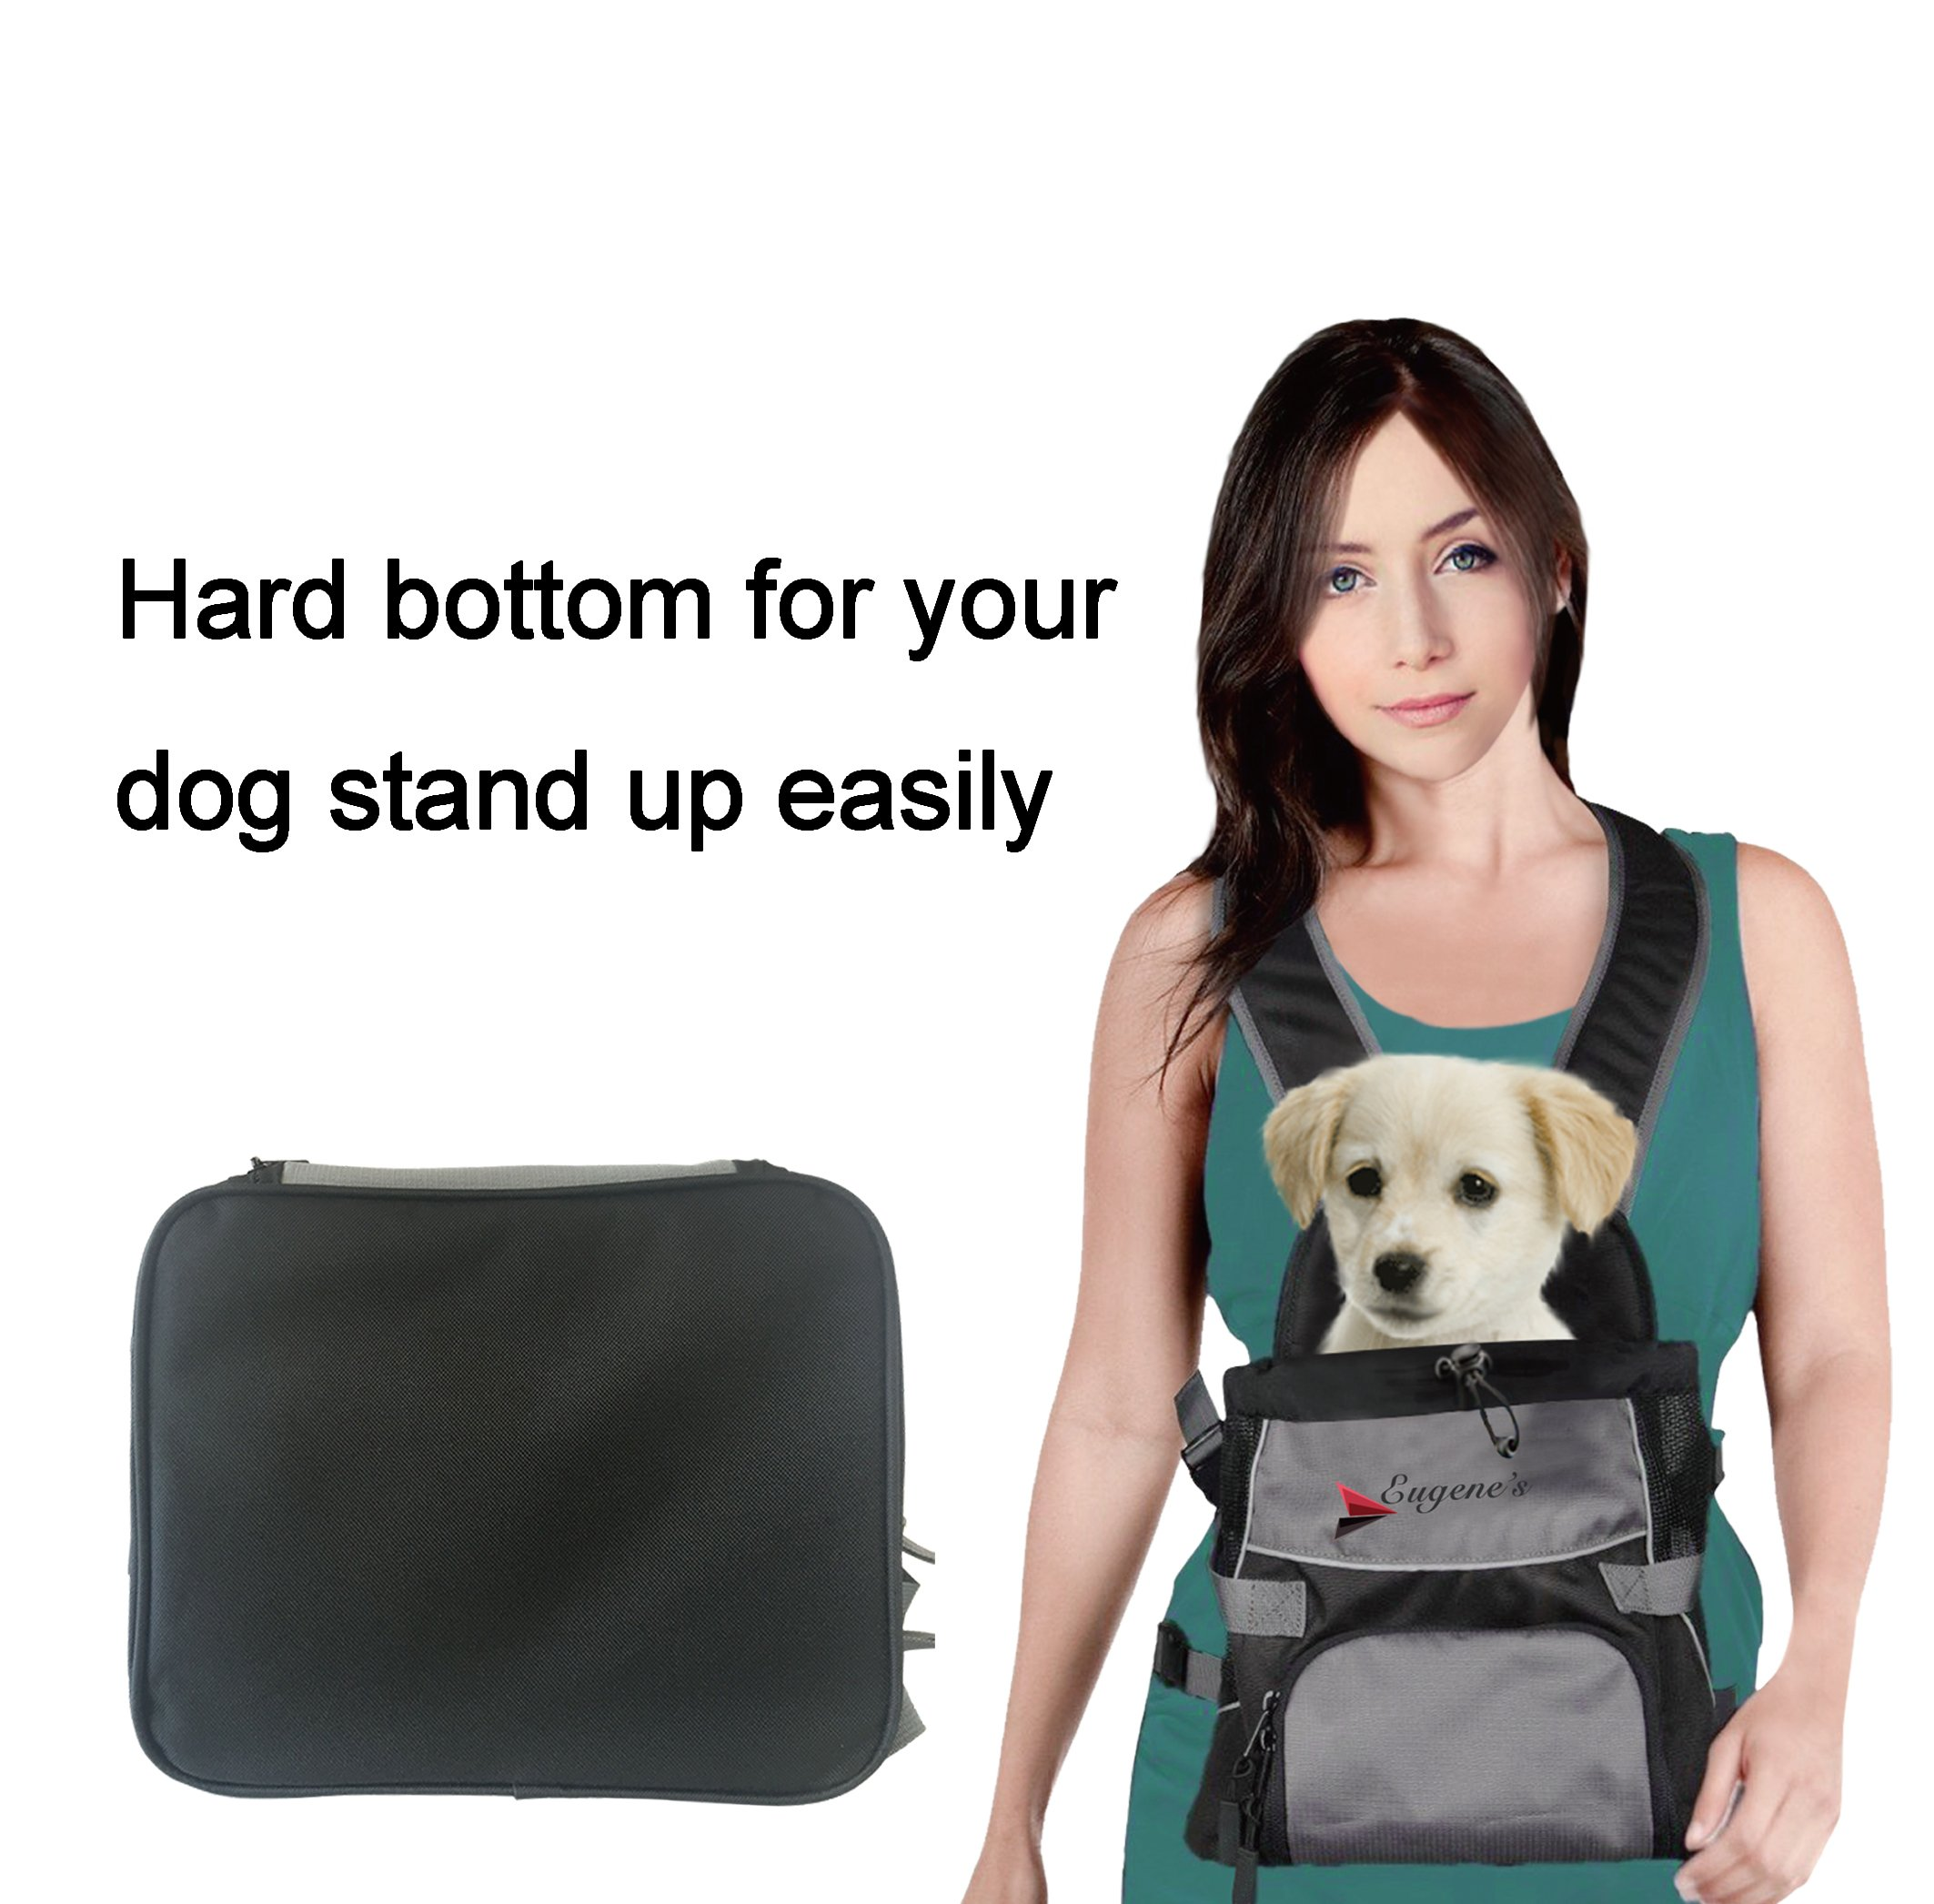 Front Dog Cat Pet Carrier, Dog Backpack Bag by Eugene's. Free Your Hands. Use as: Dog Carrier, Cat Carrier, Carrier For Small pets. New Generation of Dog Carriers. for your pets up to 16 lbs.